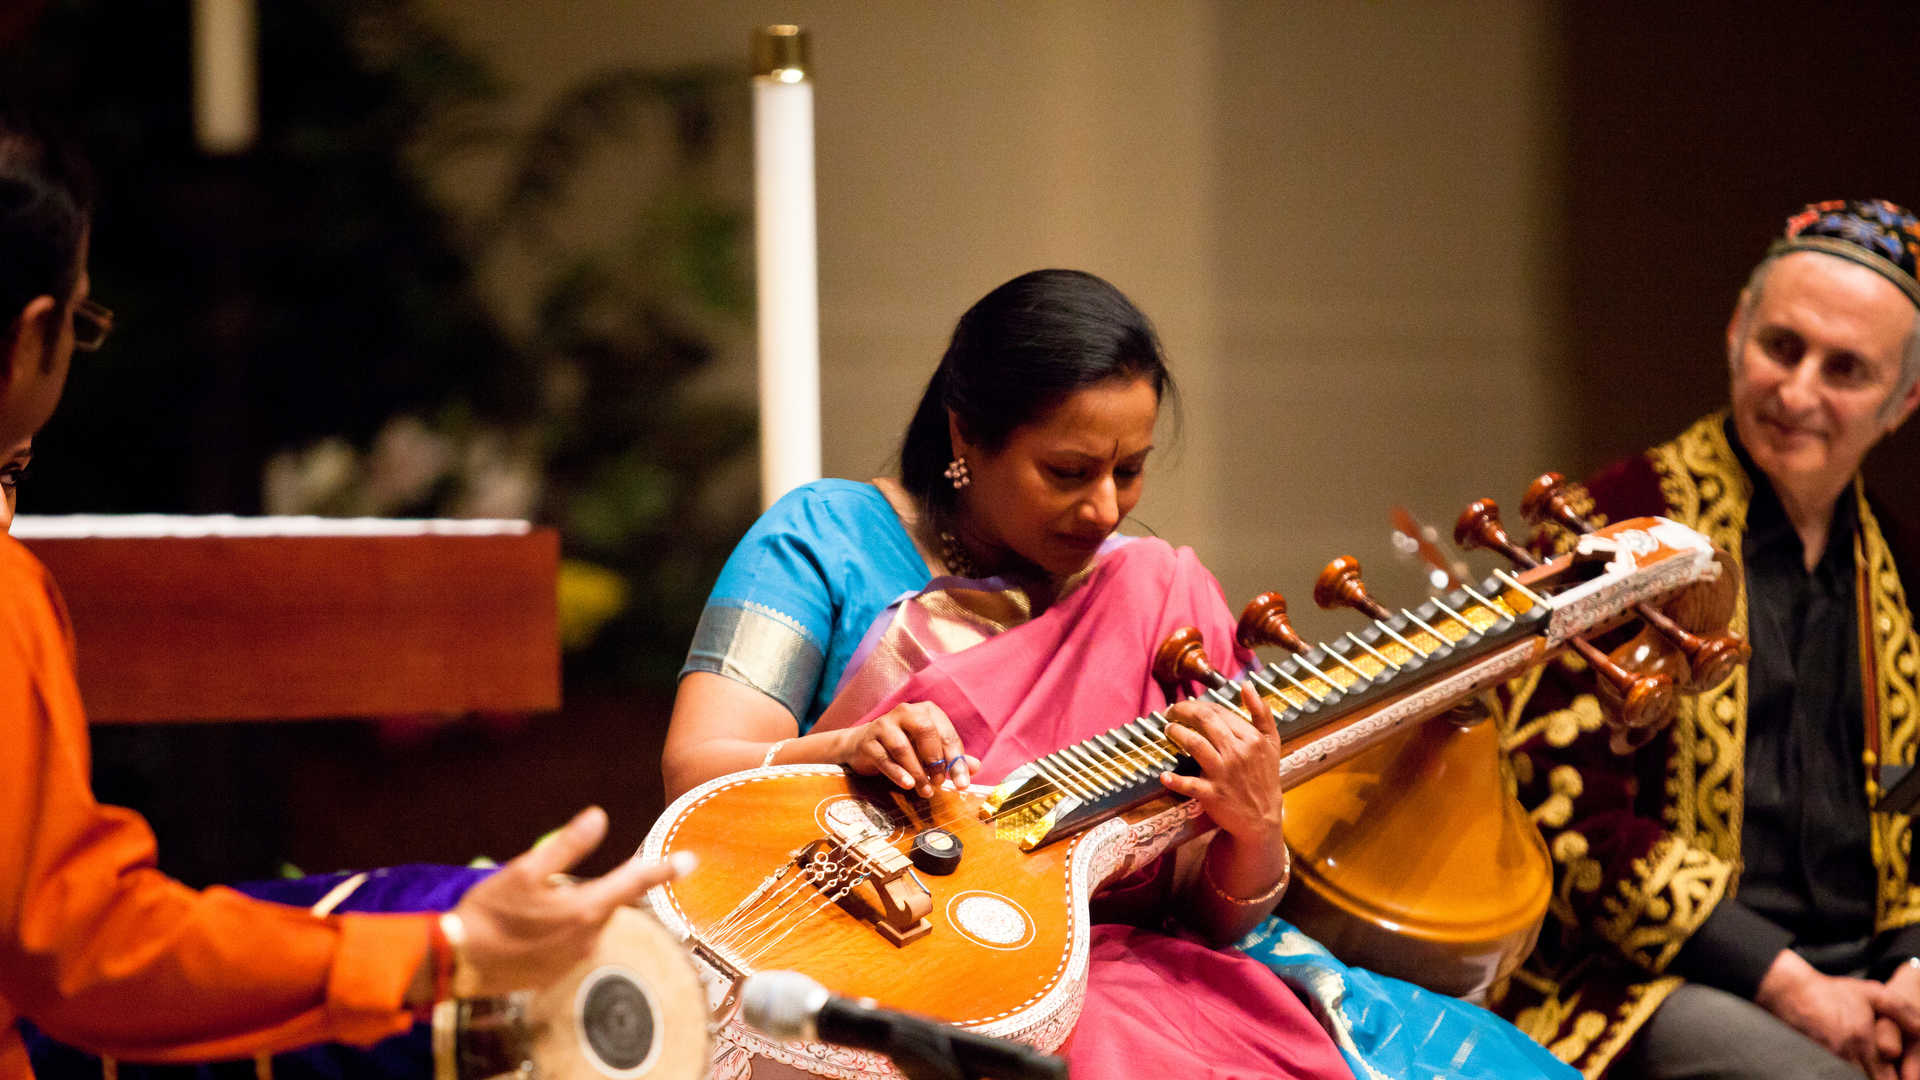 A Hindu musician plays an instrument during a concert on the St. Thomas campus.